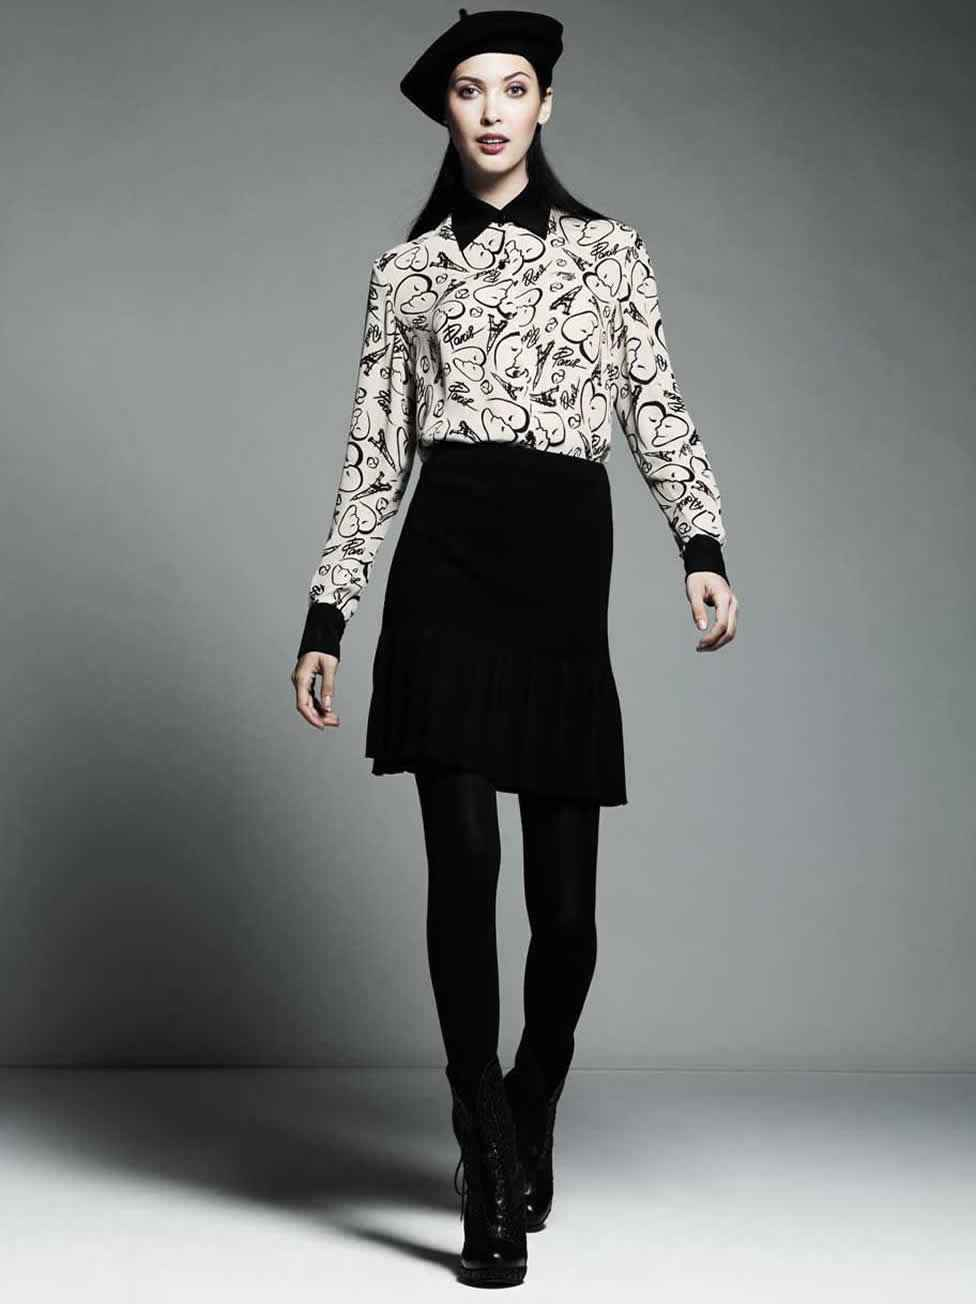 Très Chic Workweek Print Blouse with Skirt Price:$50-$54